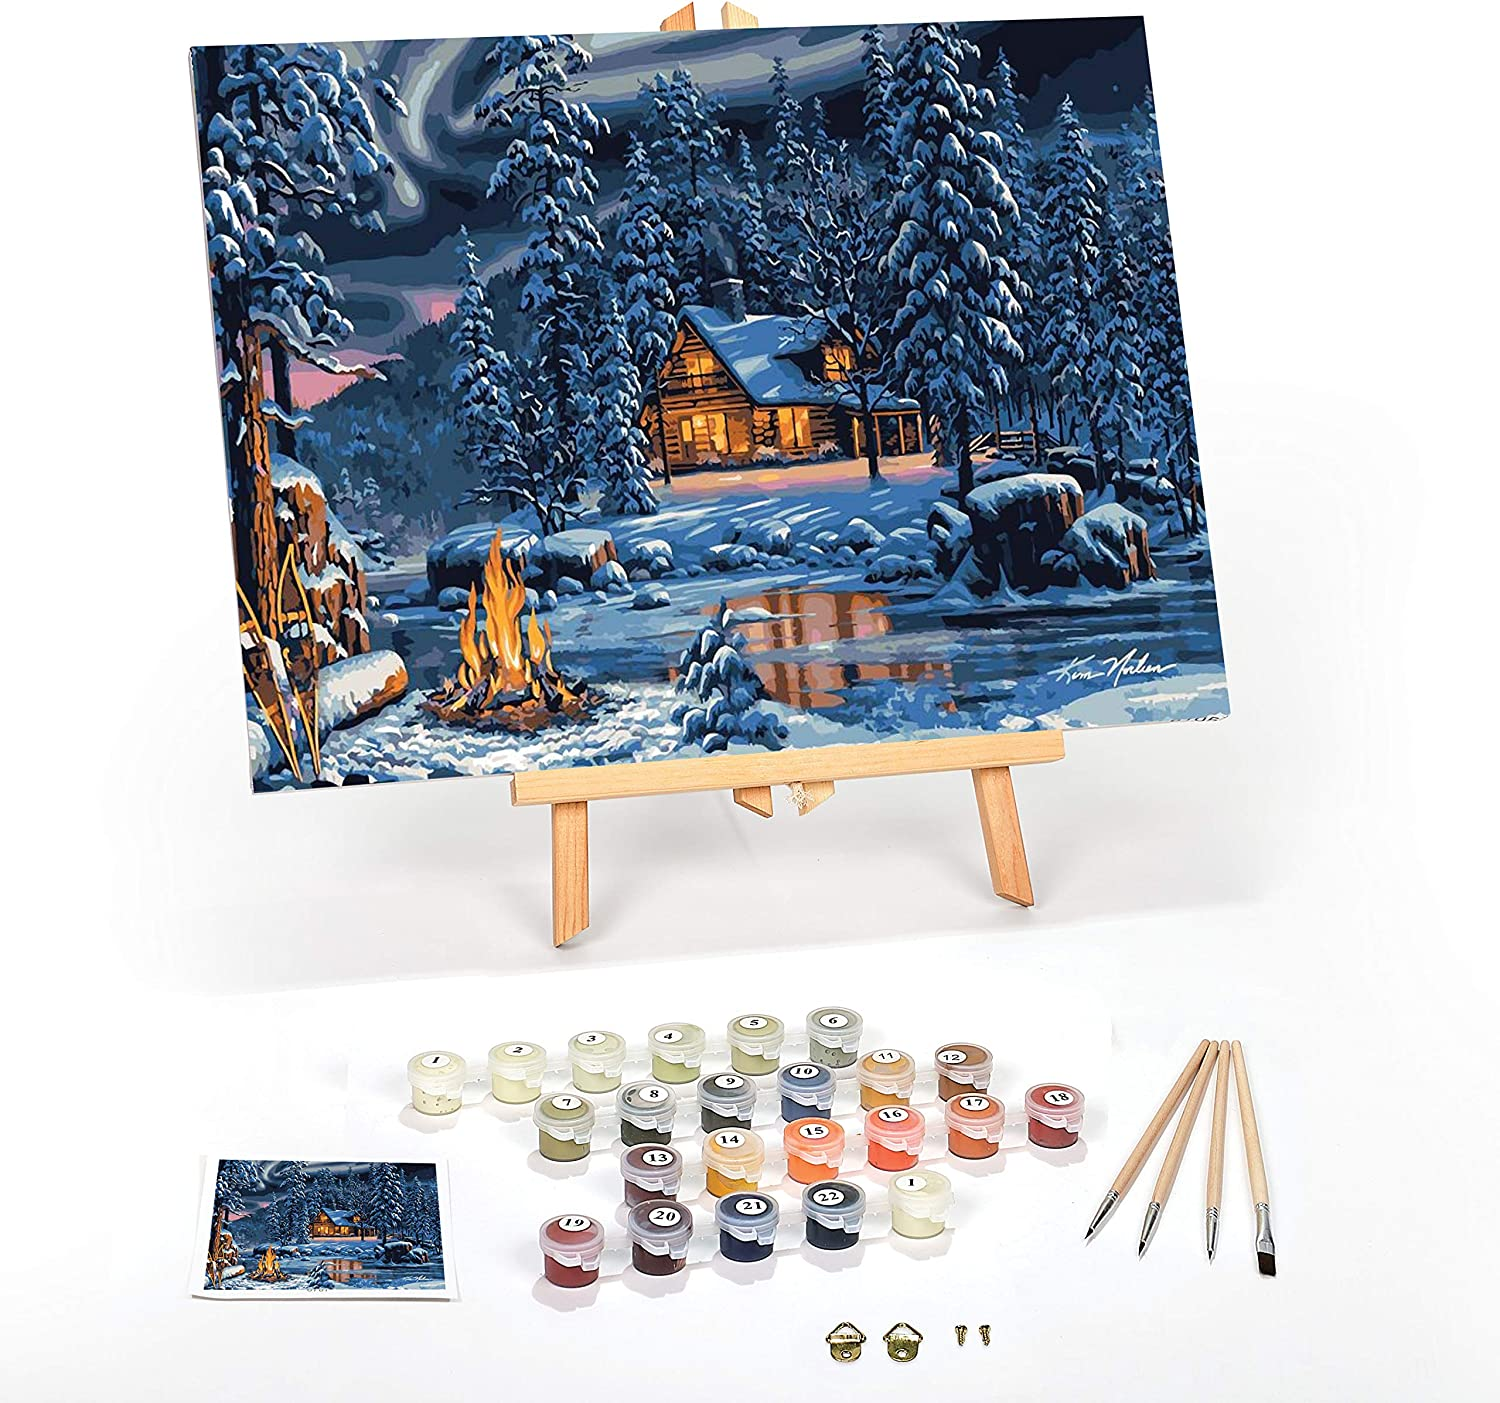 Paint By Numbers DIY Acrylic Painting Kit for Kids /& Adults 40X45cm Firefly F NI